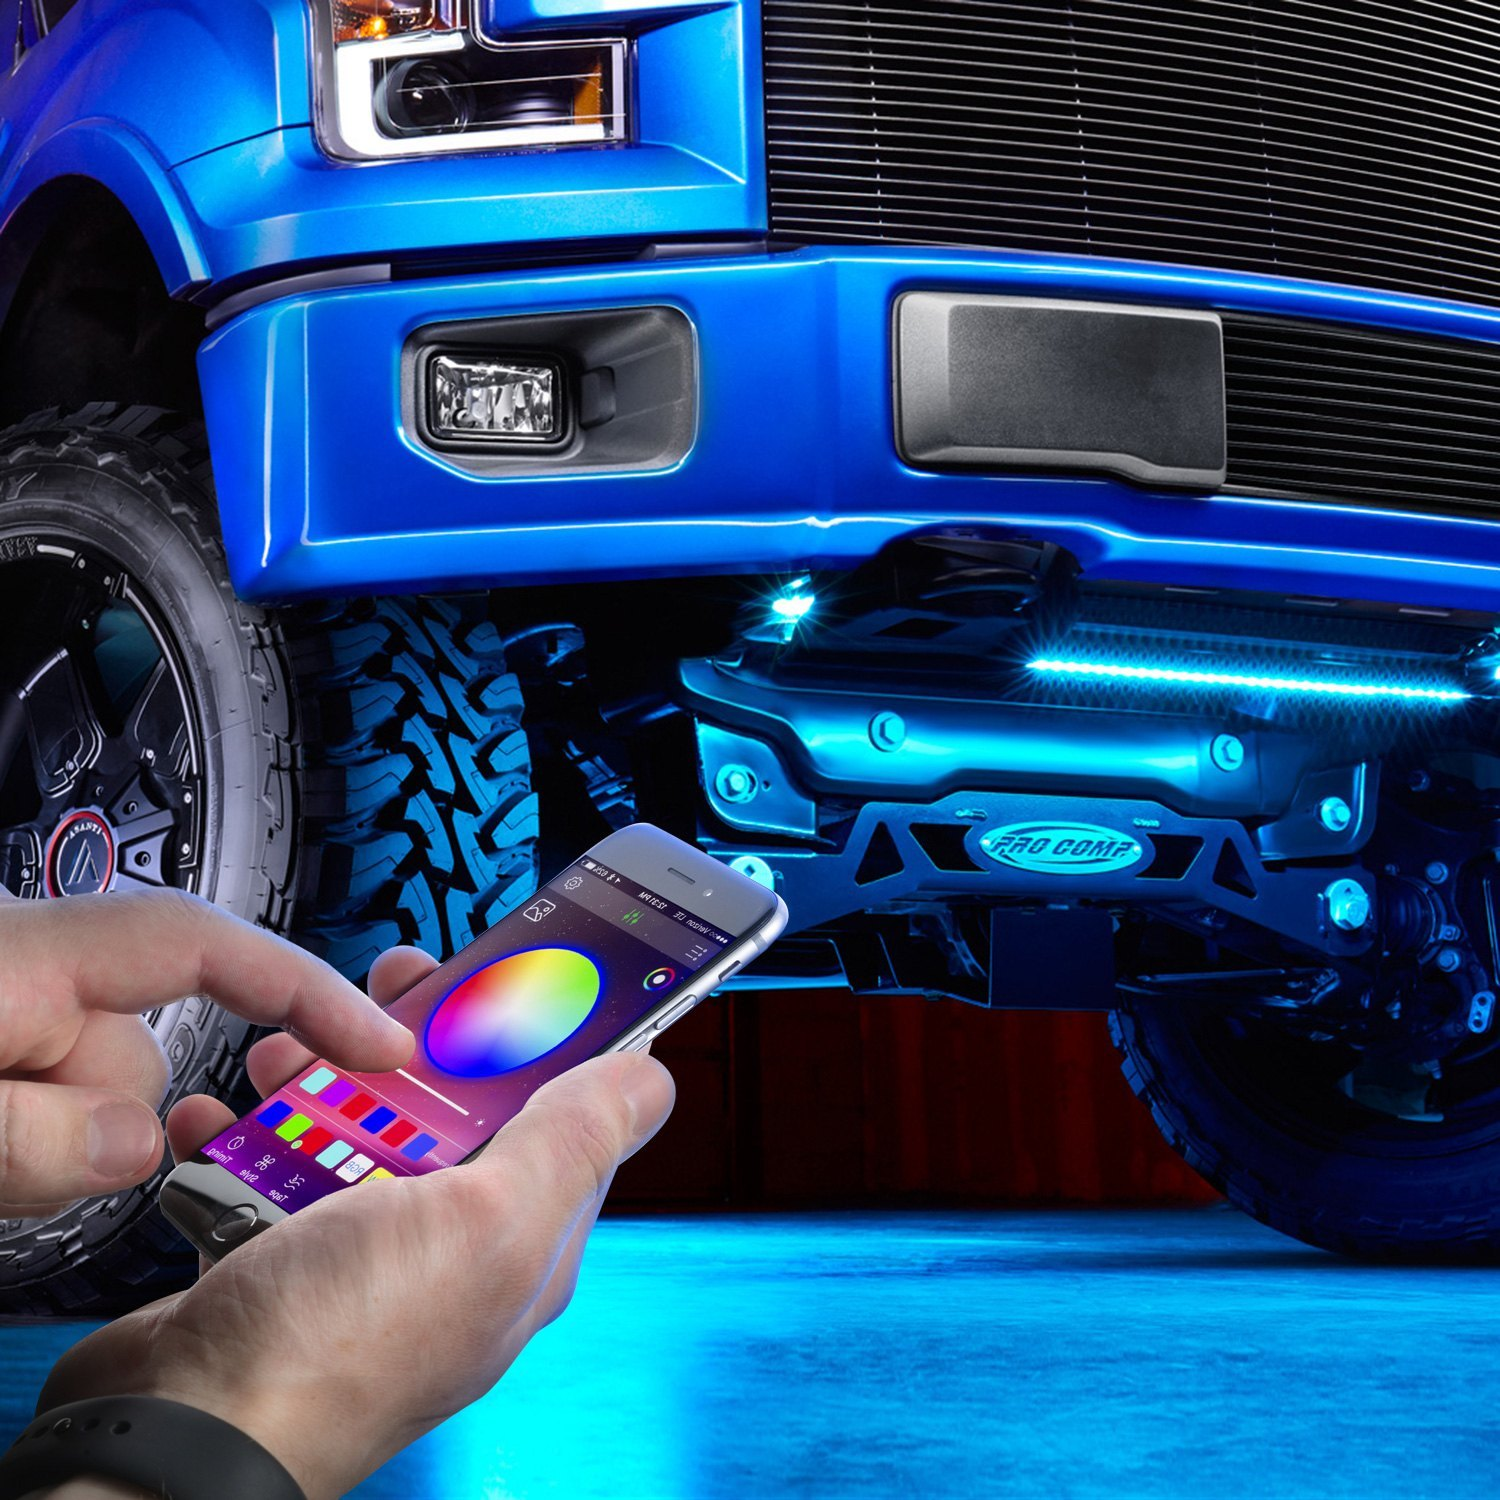 buy cheap Lumen® UBLONG-KIT - App Control RGB LED Underbody Kit for 2015 RAM 1500 TRUCK Ebay & Amazon